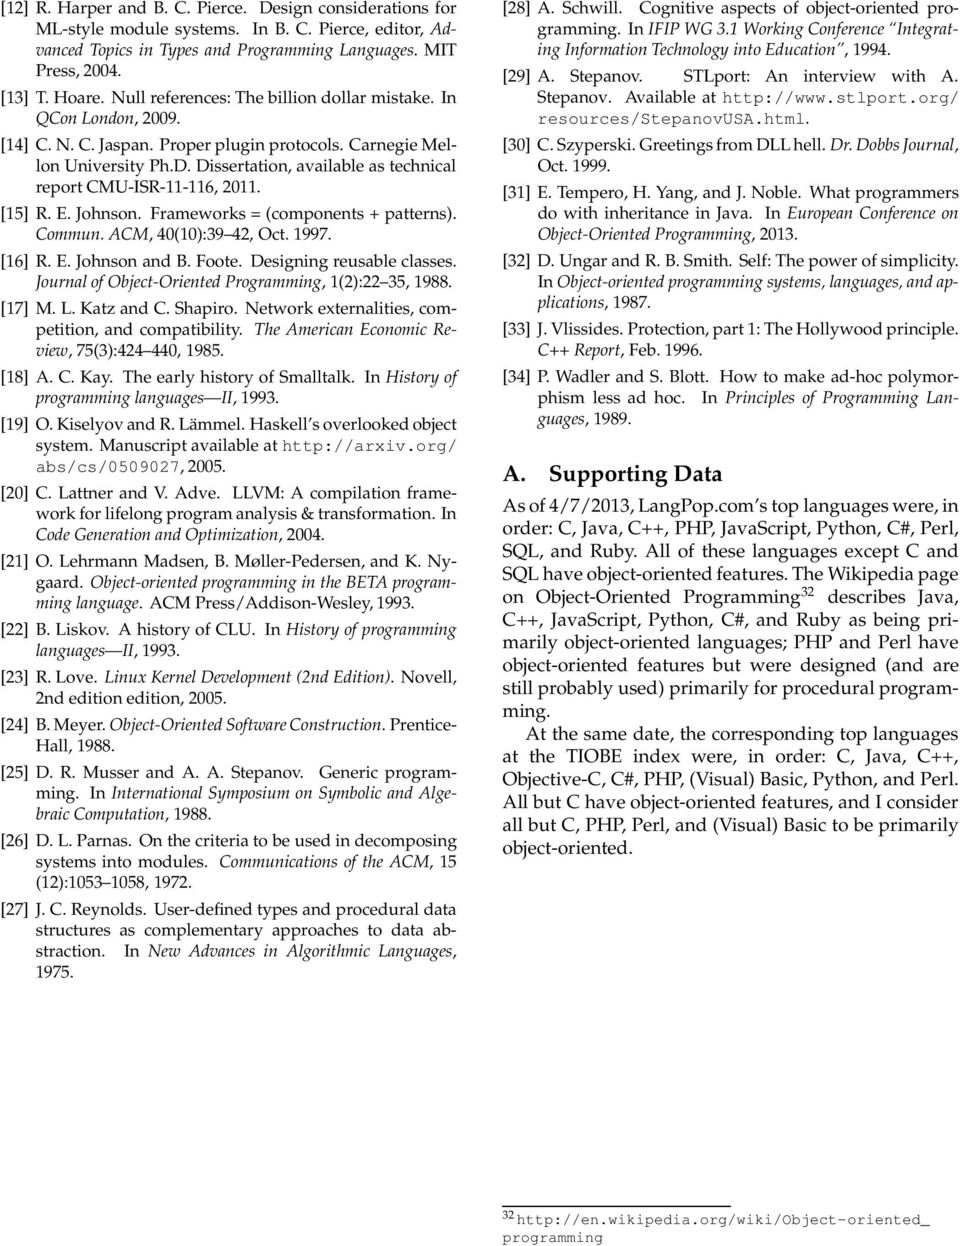 Dissertation, available as technical report CMU-ISR-11-116, 2011. [15] R. E. Johnson. Frameworks = (components + patterns). Commun. ACM, 40(10):39 42, Oct. 1997. [16] R. E. Johnson and B. Foote.